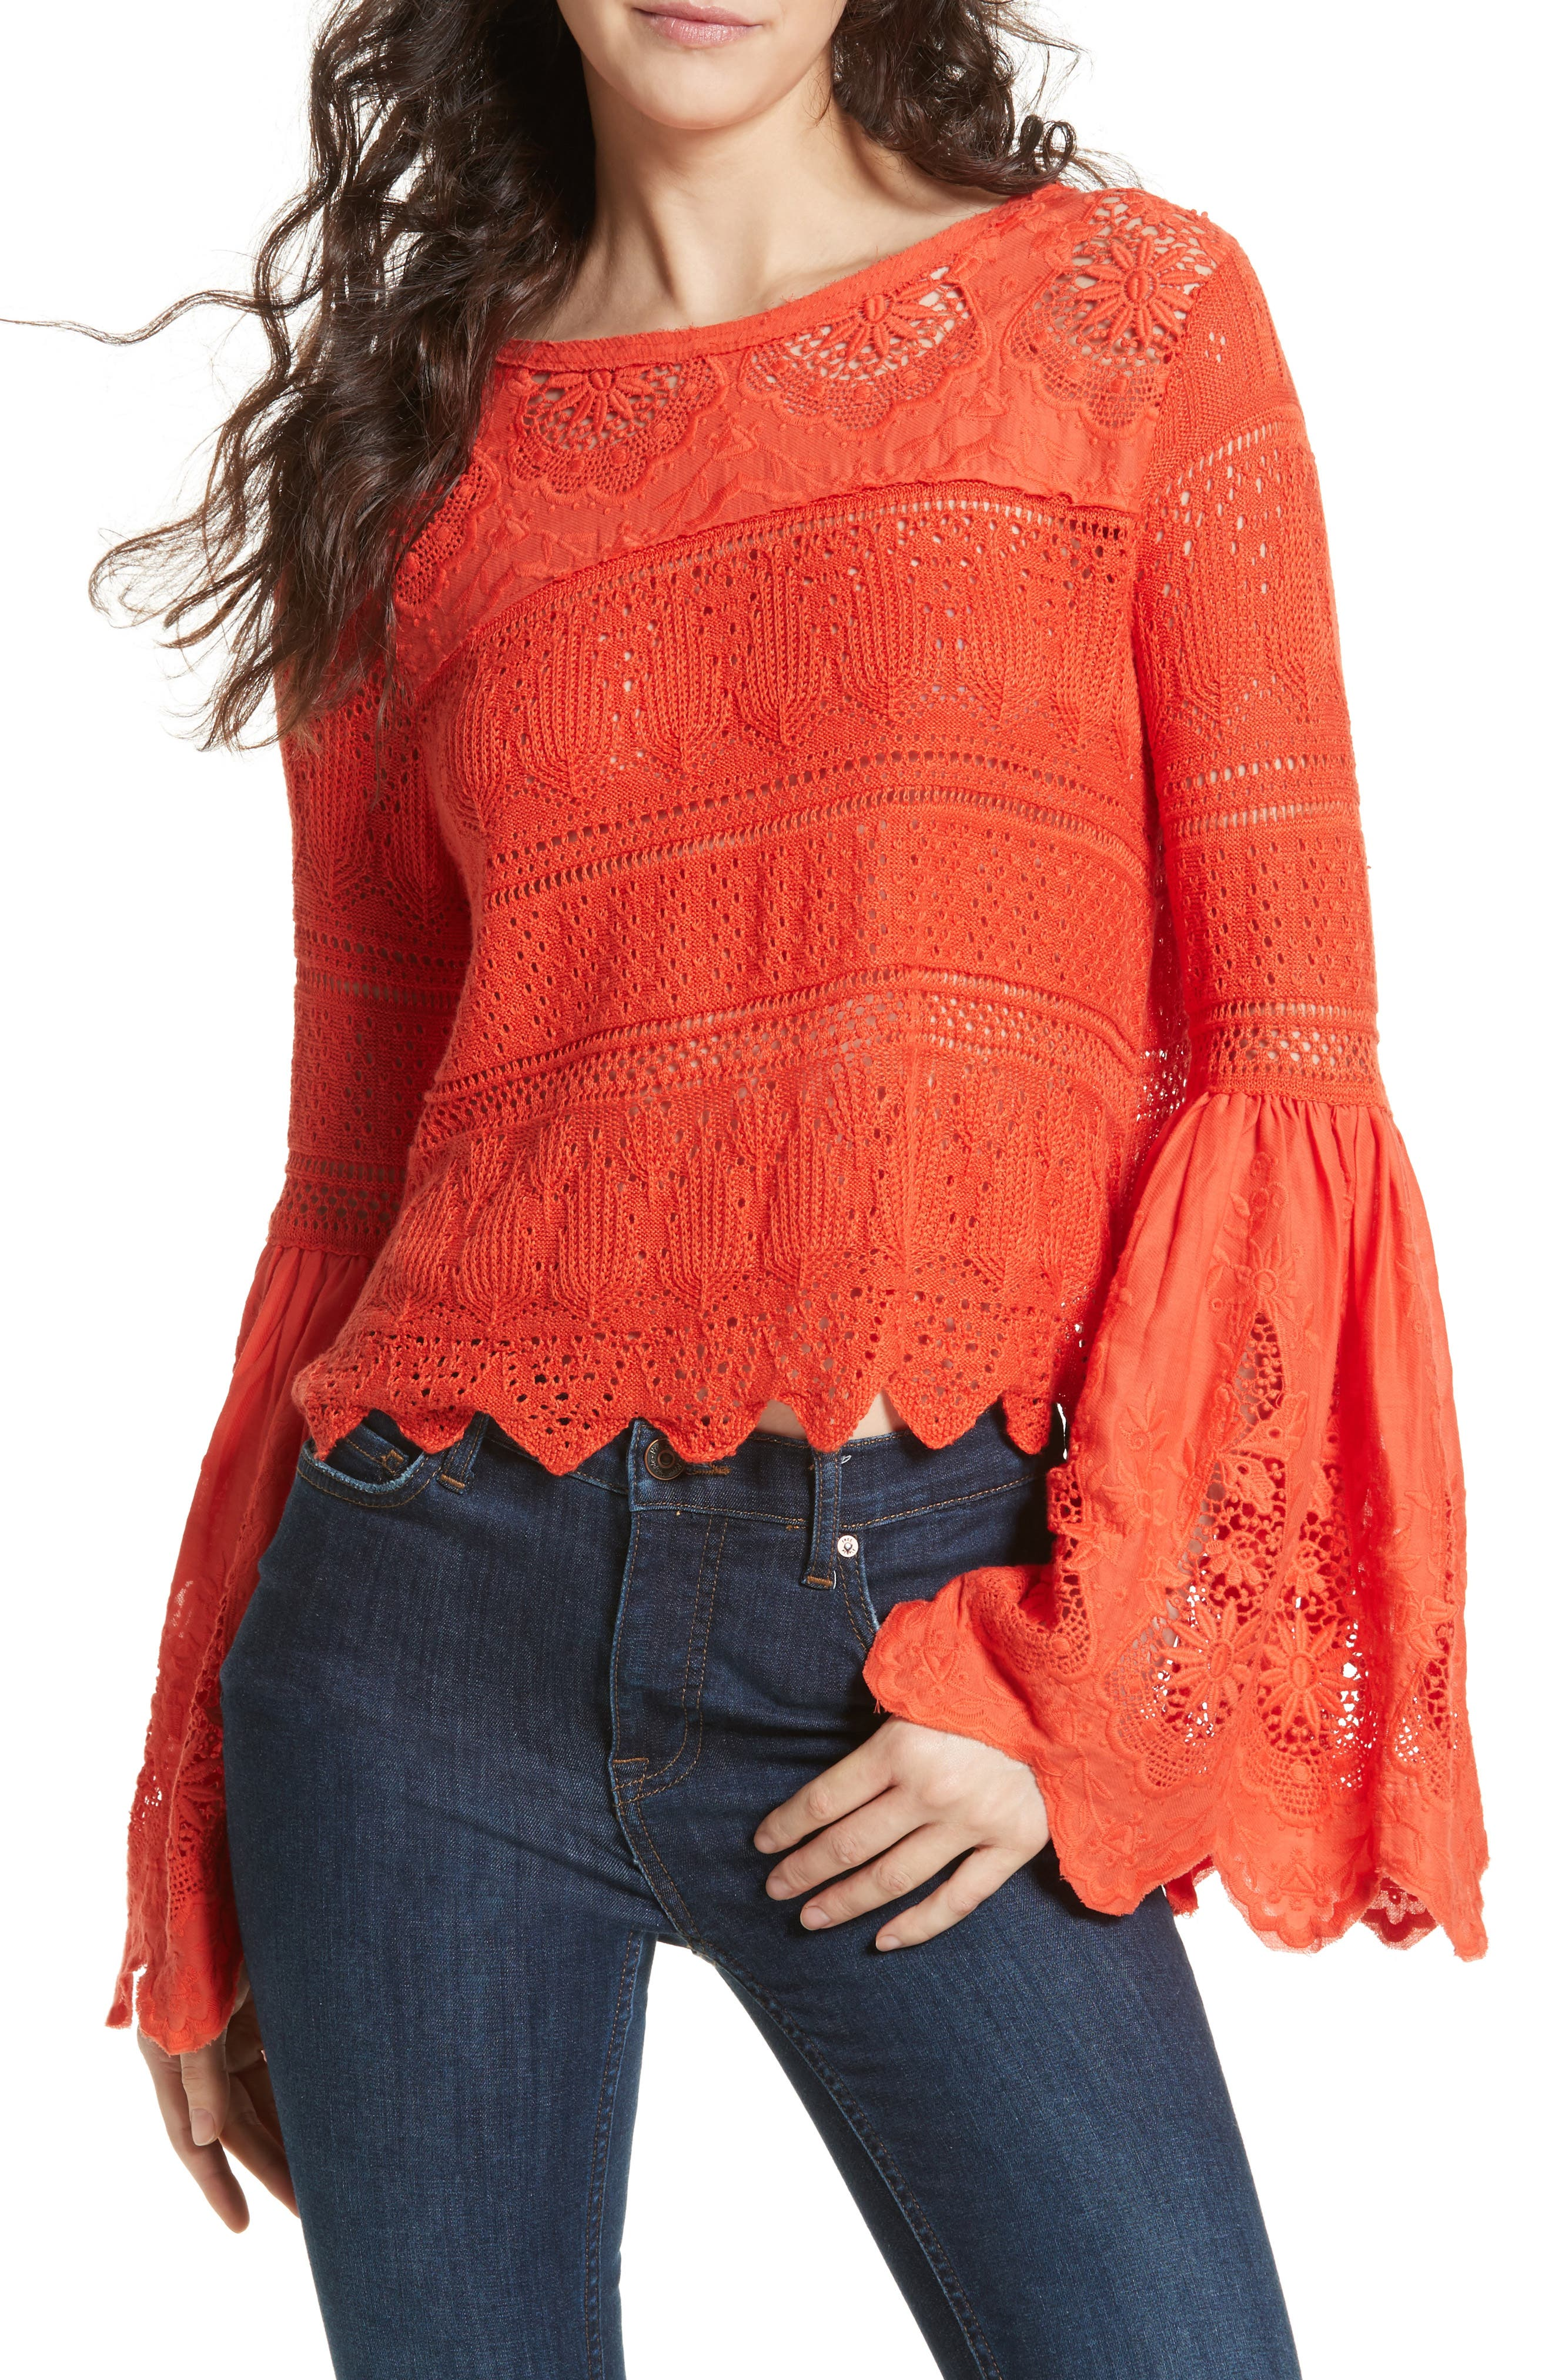 Alternate Image 1 Selected - Free People Once Upon a Time Lace Top